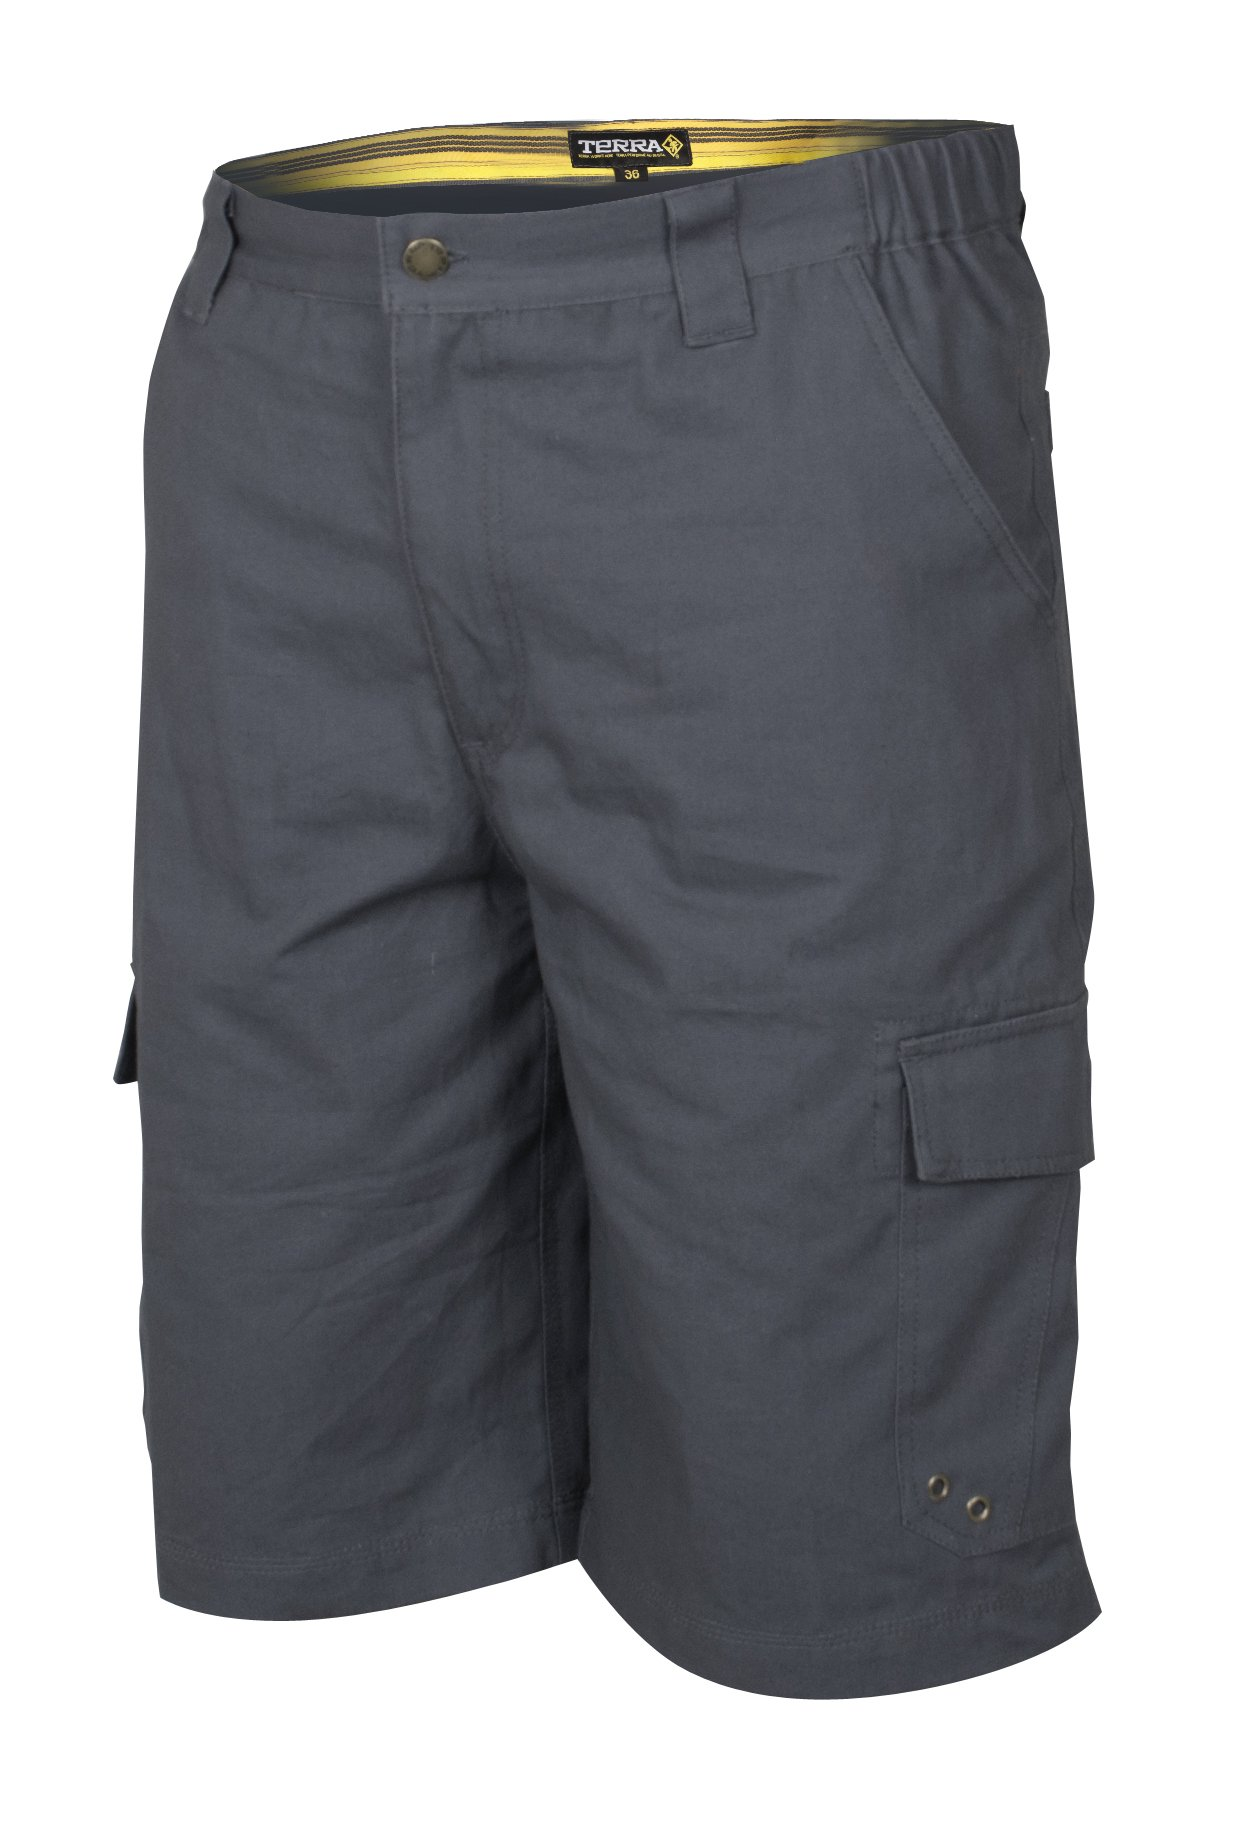 Terra 10-0113-CH34 Vice 100% Cotton Heavy Duty Multi-Pocket Cargo Style Work Short Safety Pants with 34'' Waist